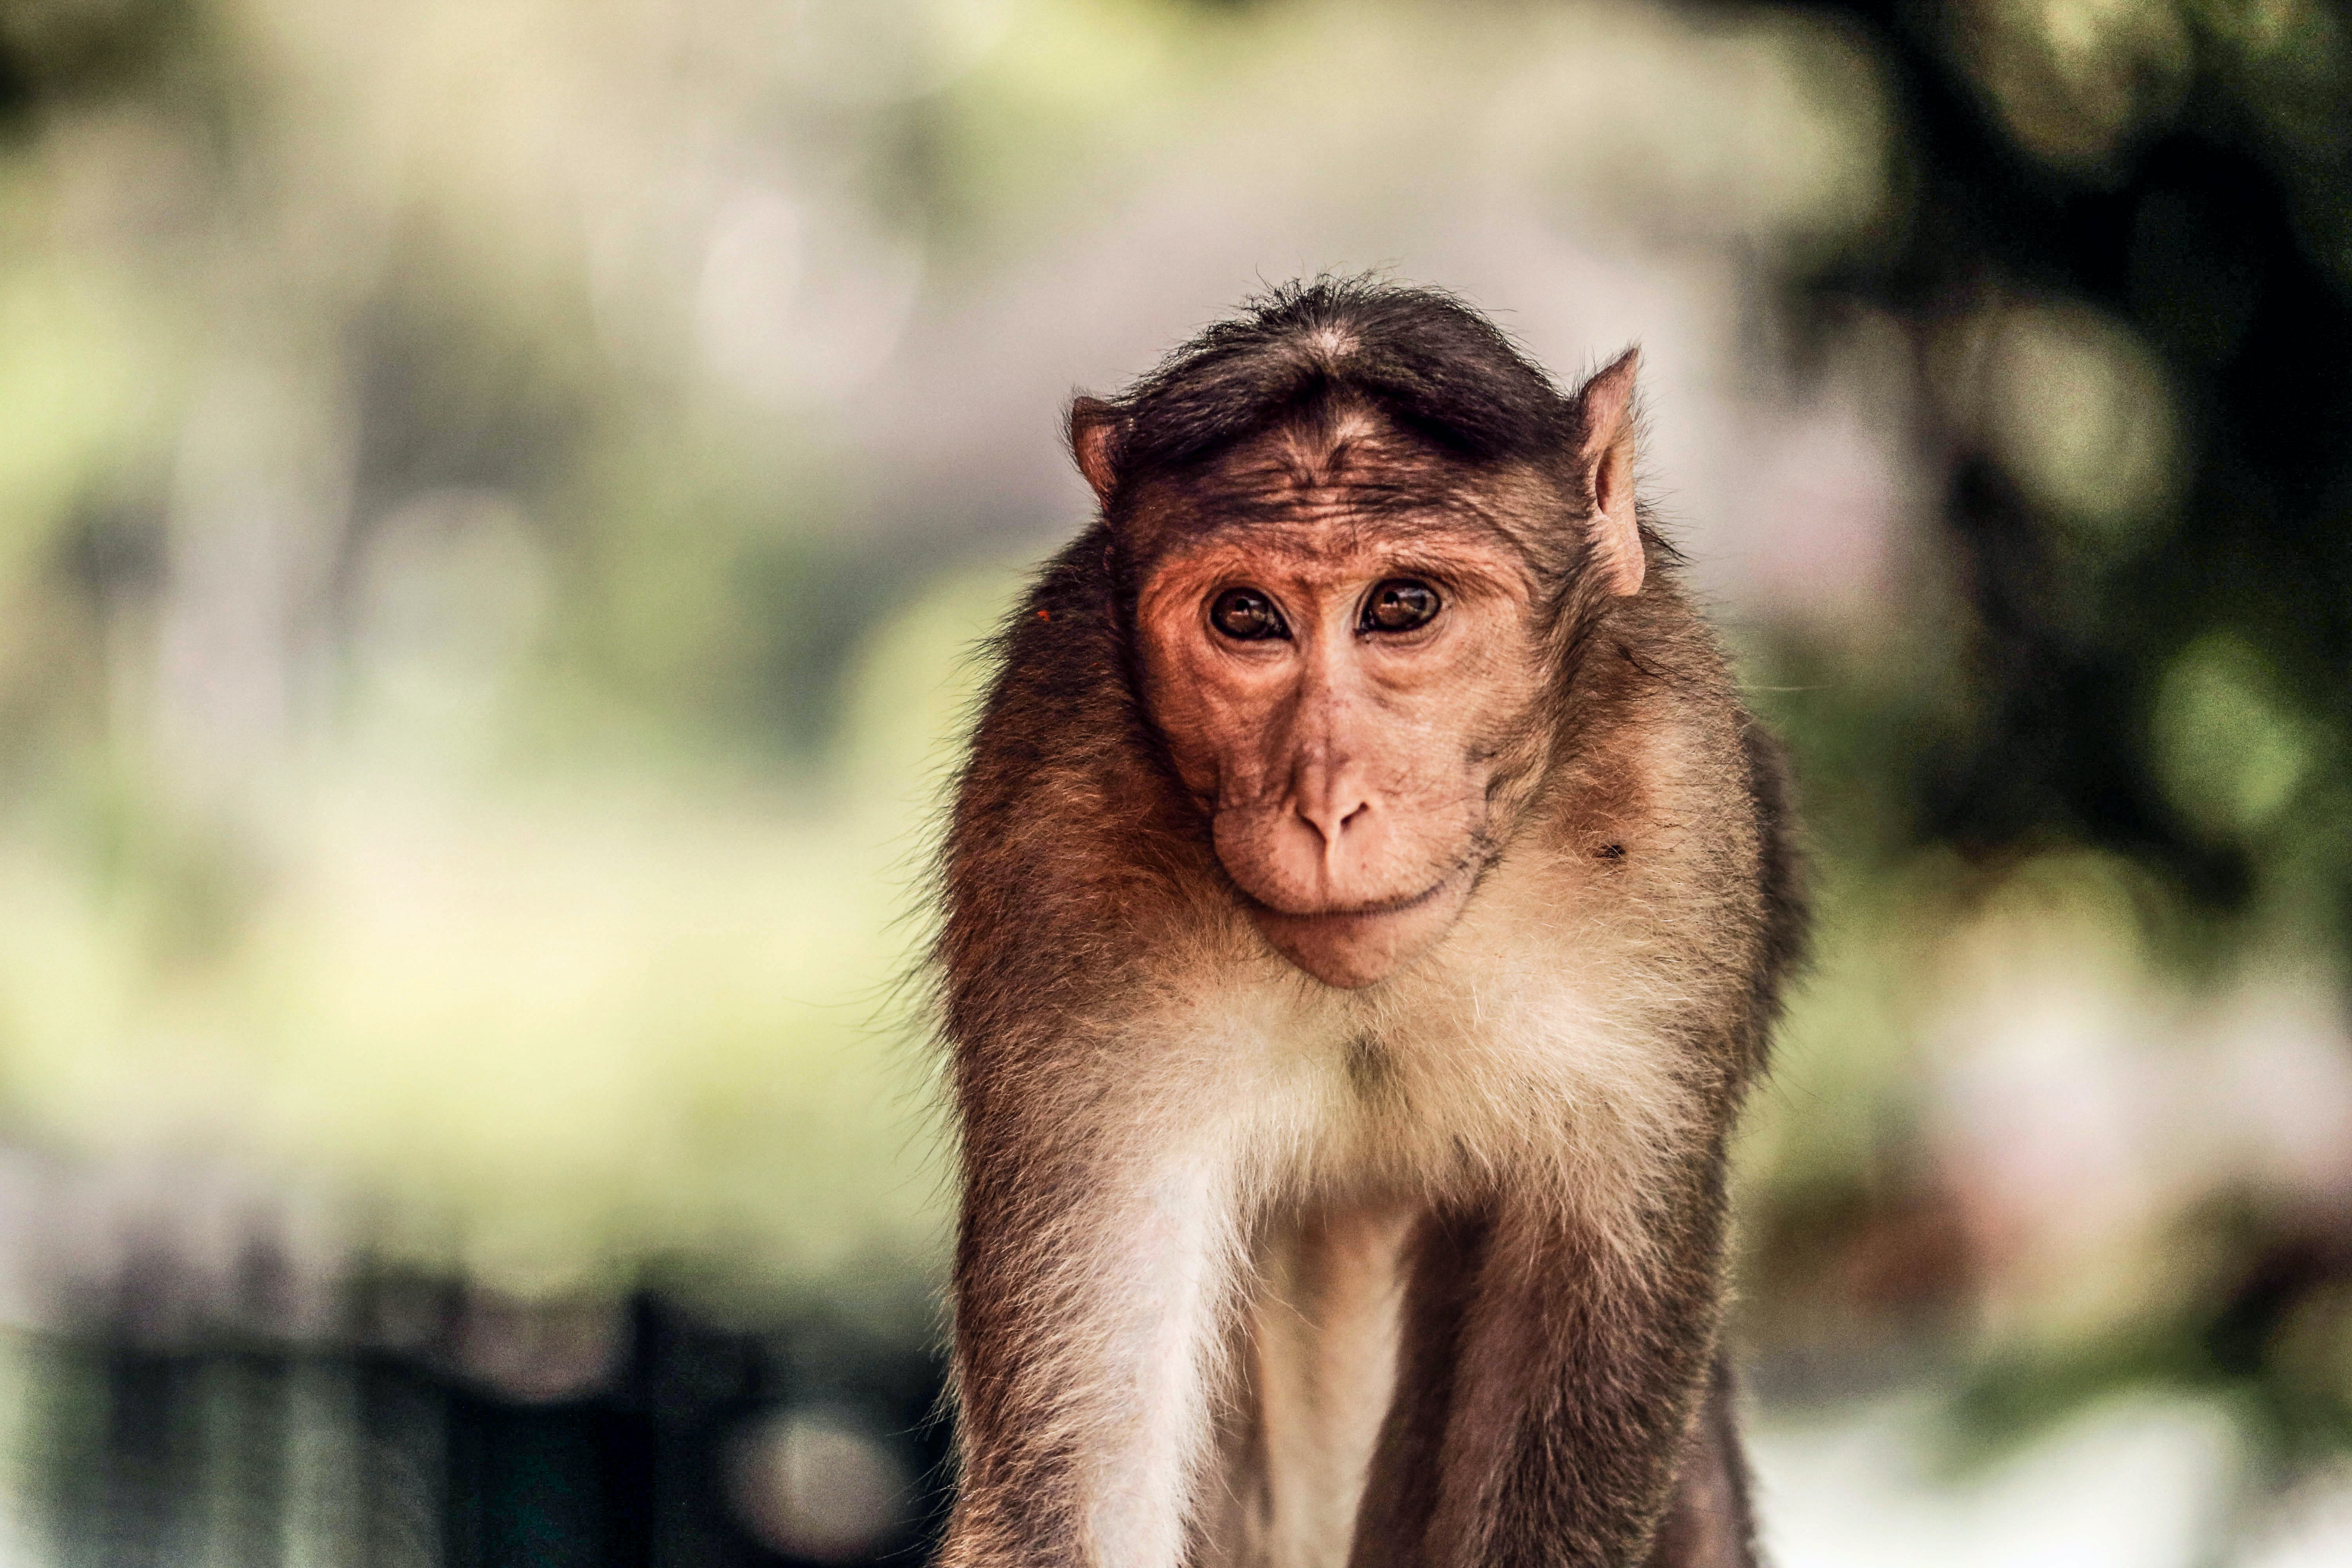 A monkey with beady eyes looking shy